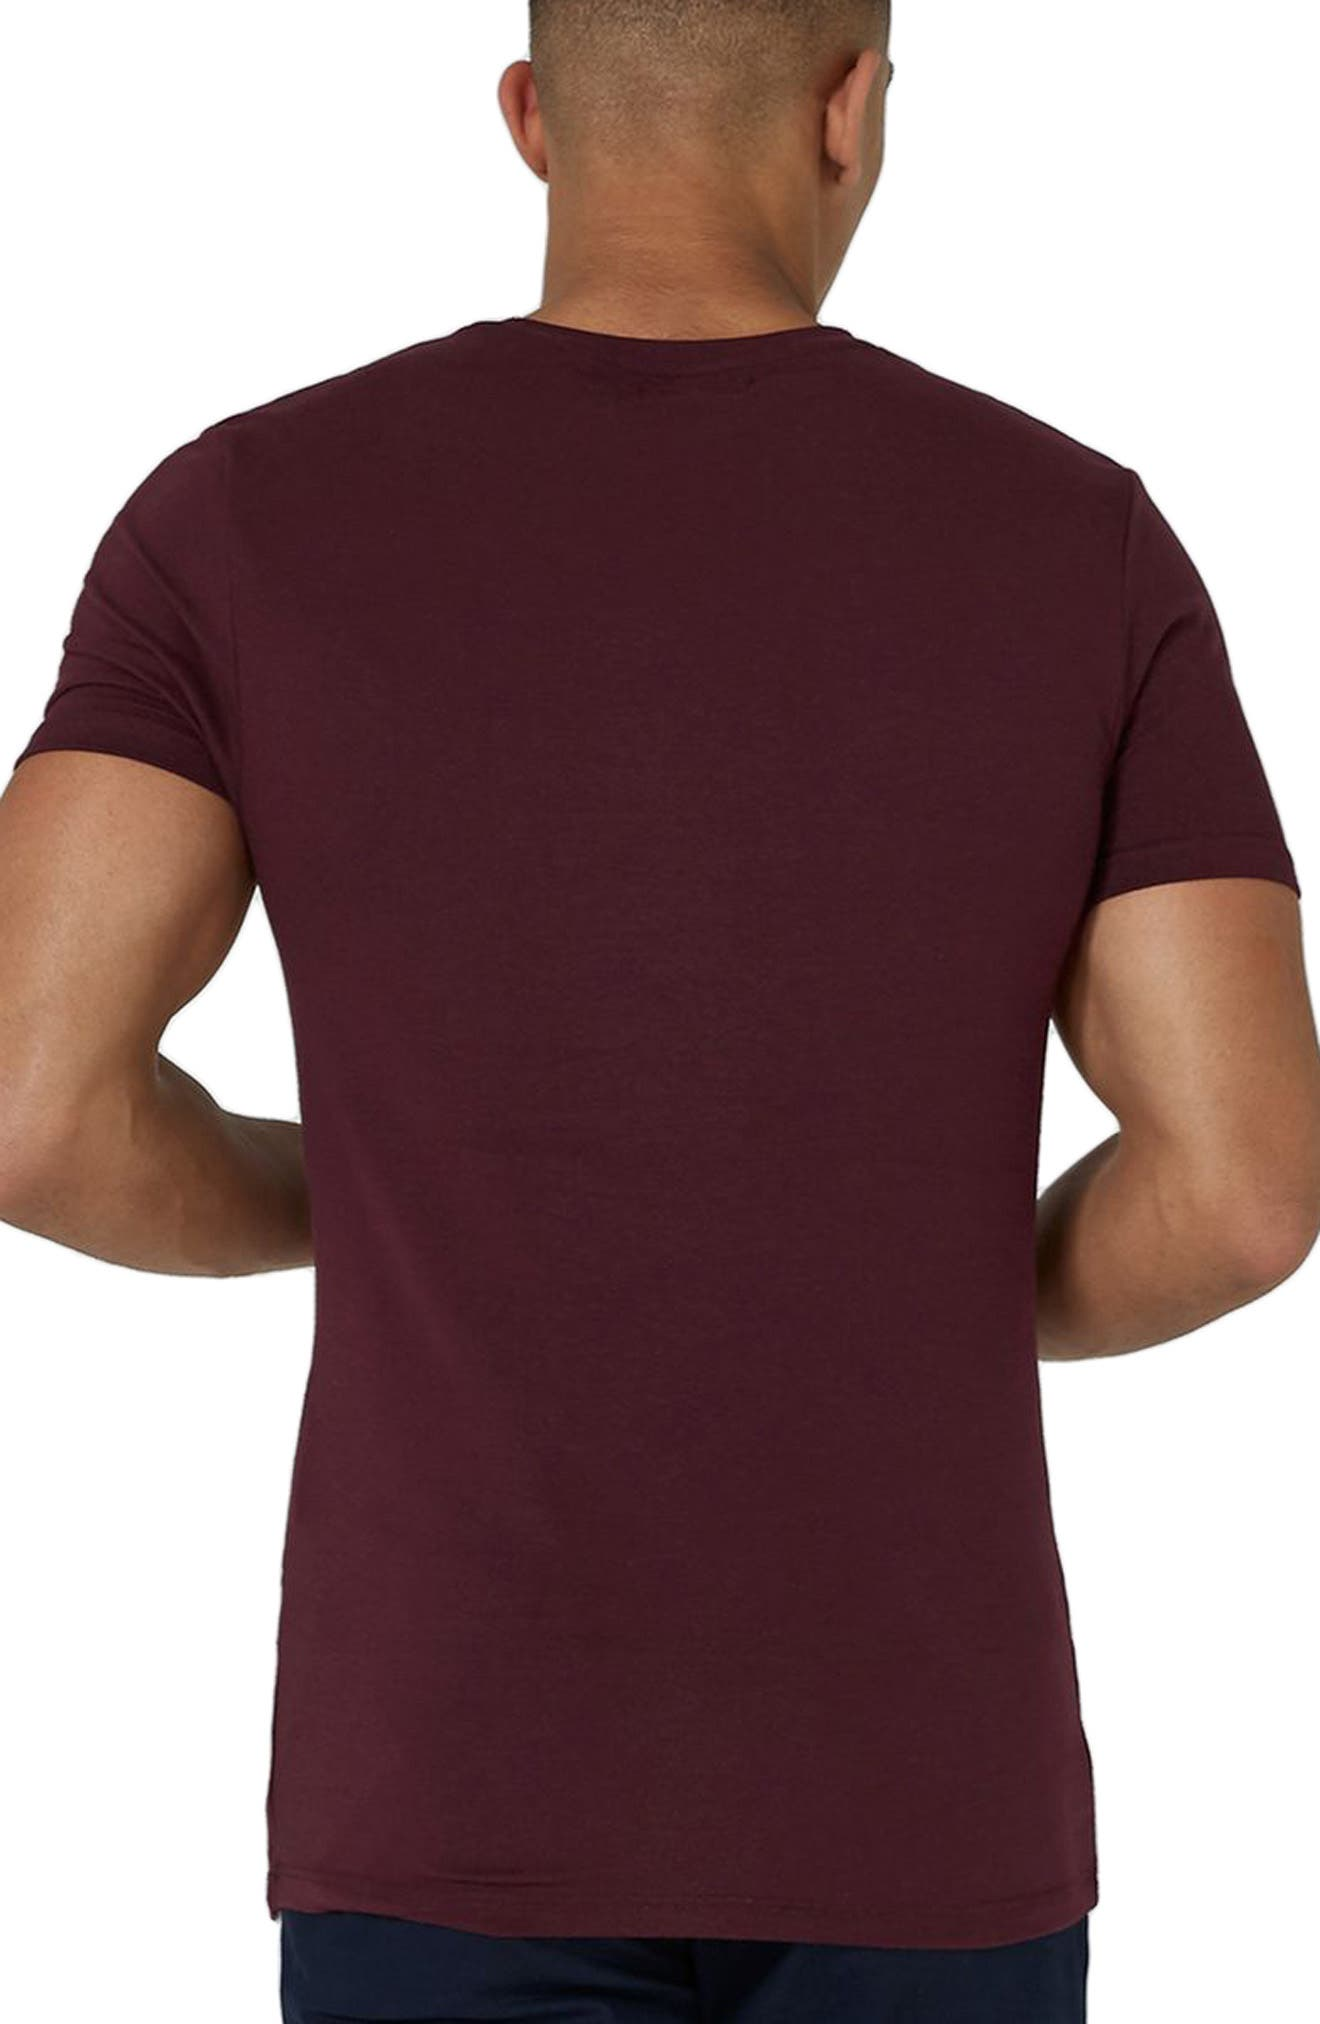 Ultra Muscle Fit T-Shirt,                             Alternate thumbnail 2, color,                             930